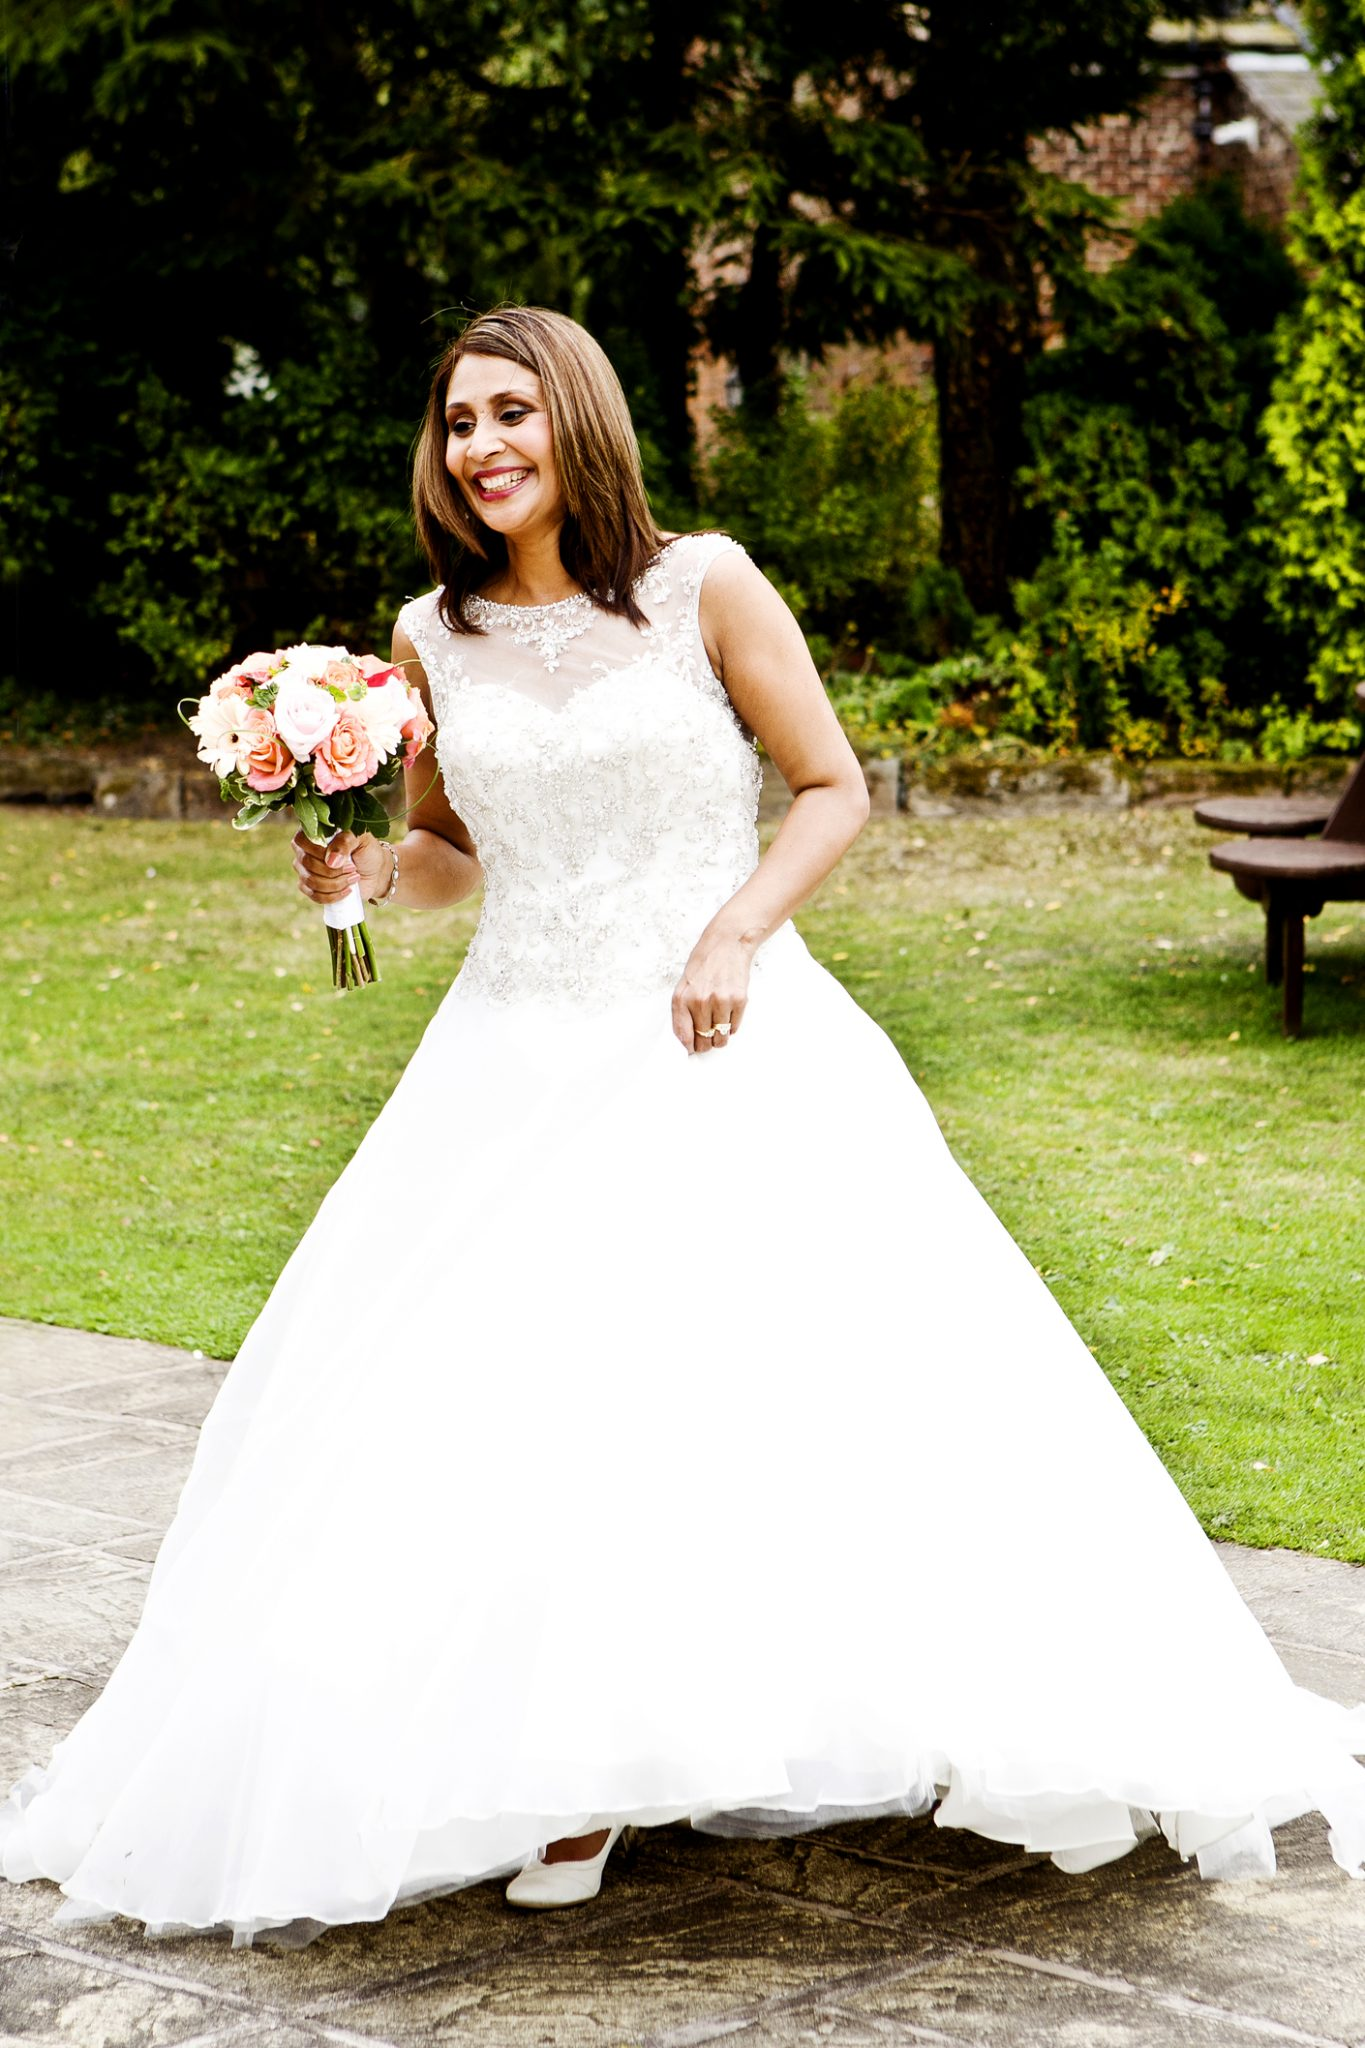 wedding-photography-of-the-bride-at-the-plough-inn-in-cheshire